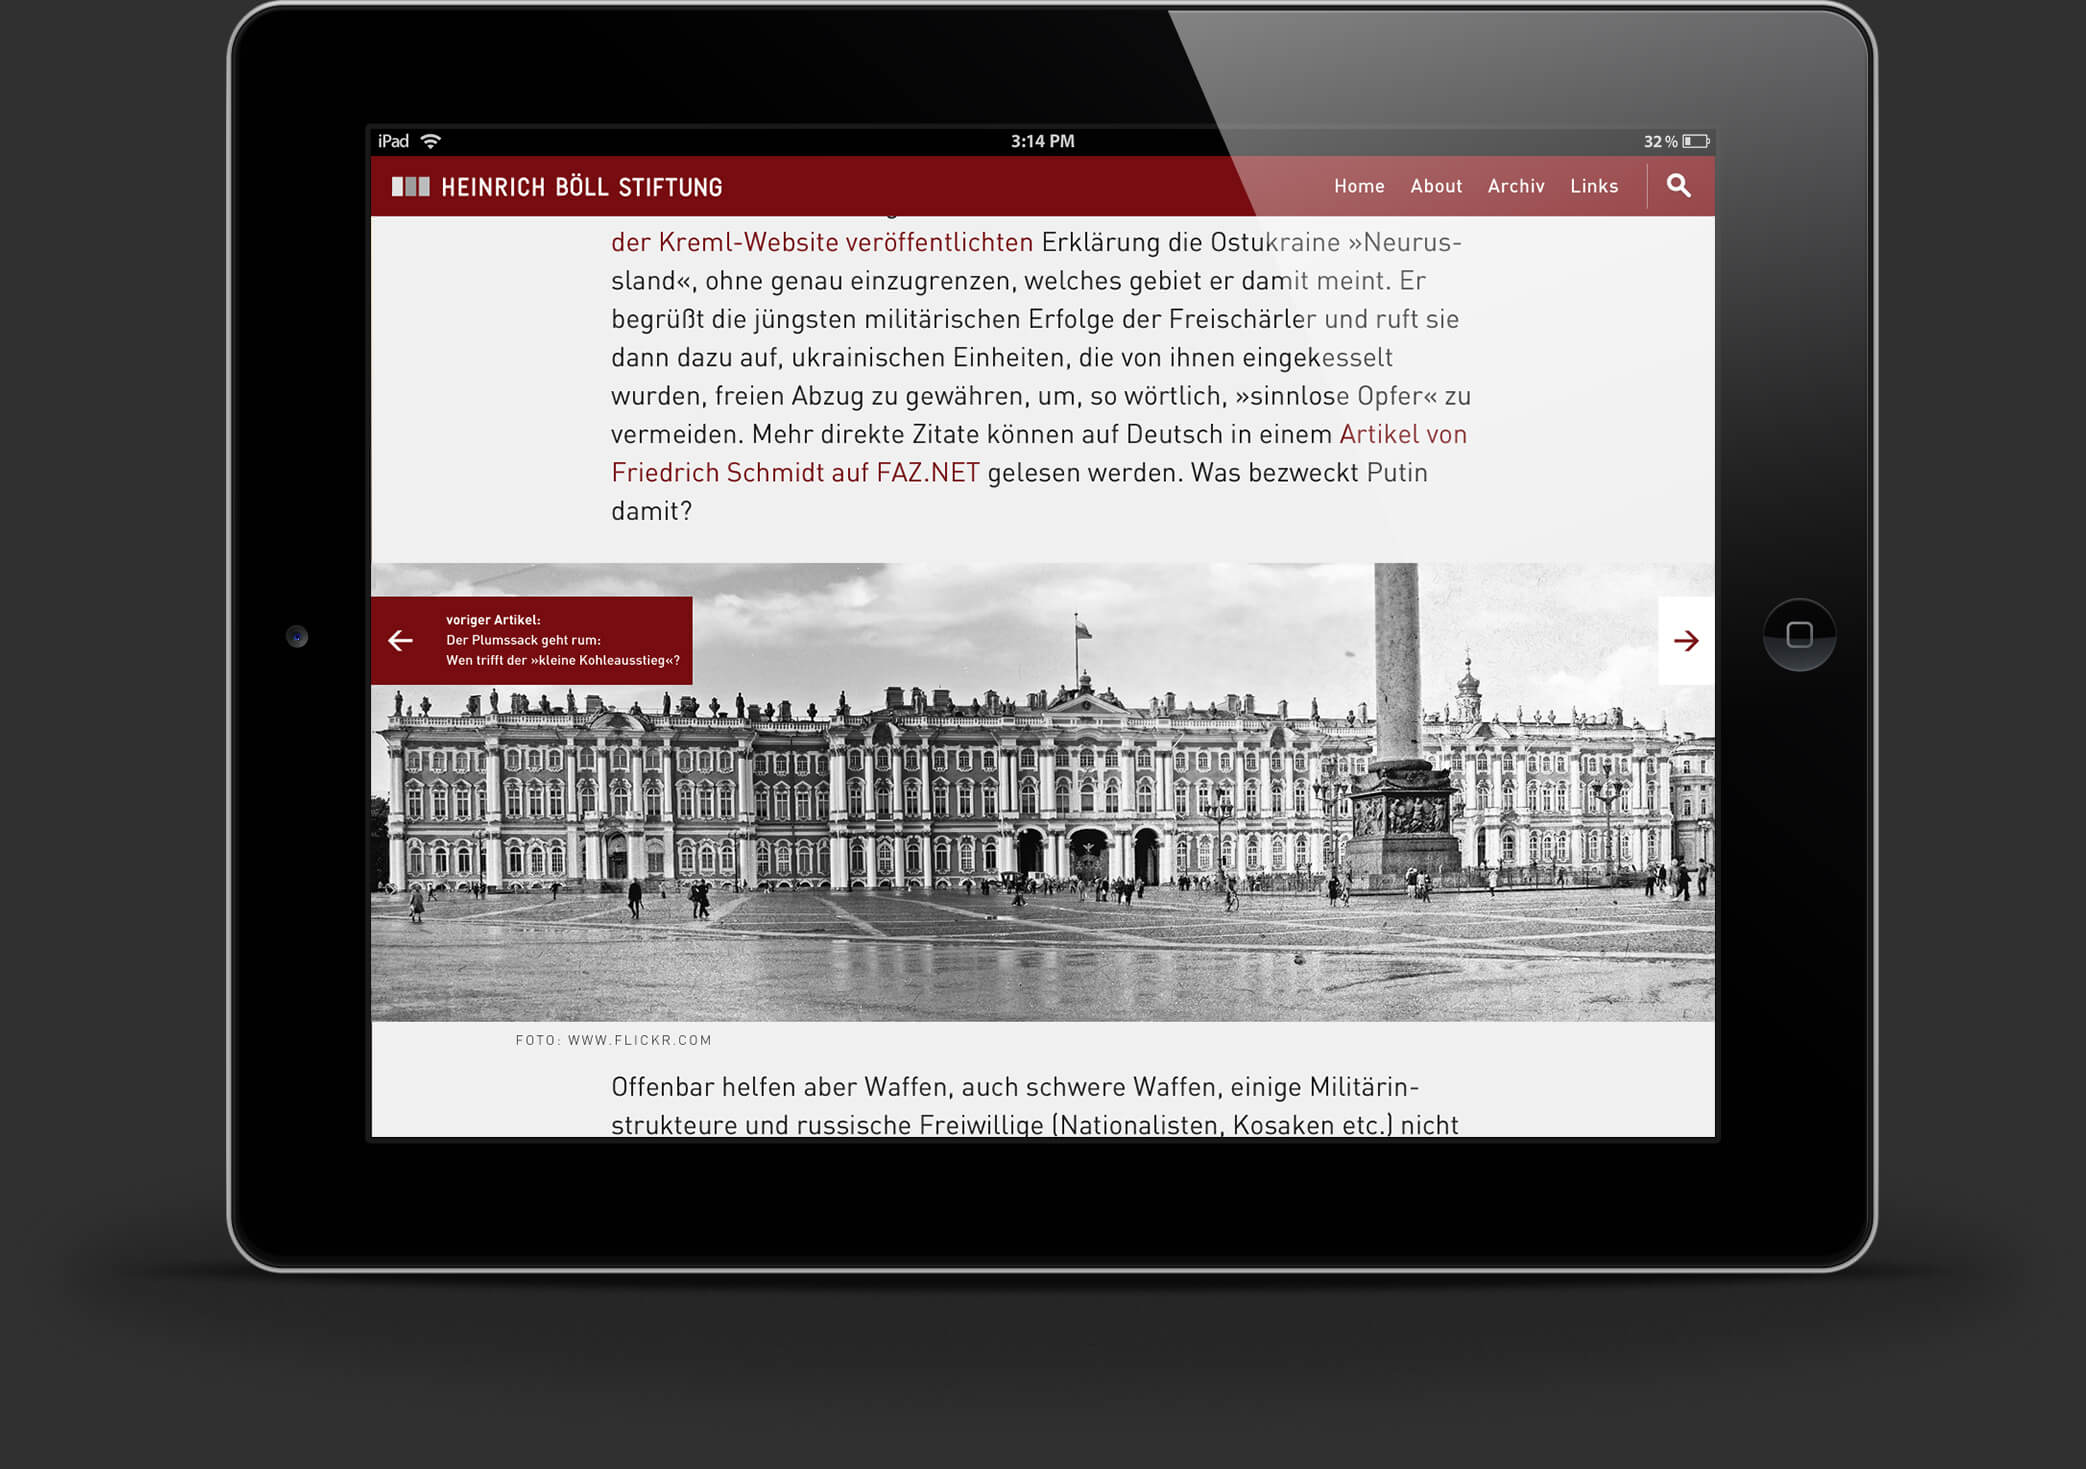 boell_article_ipad_2